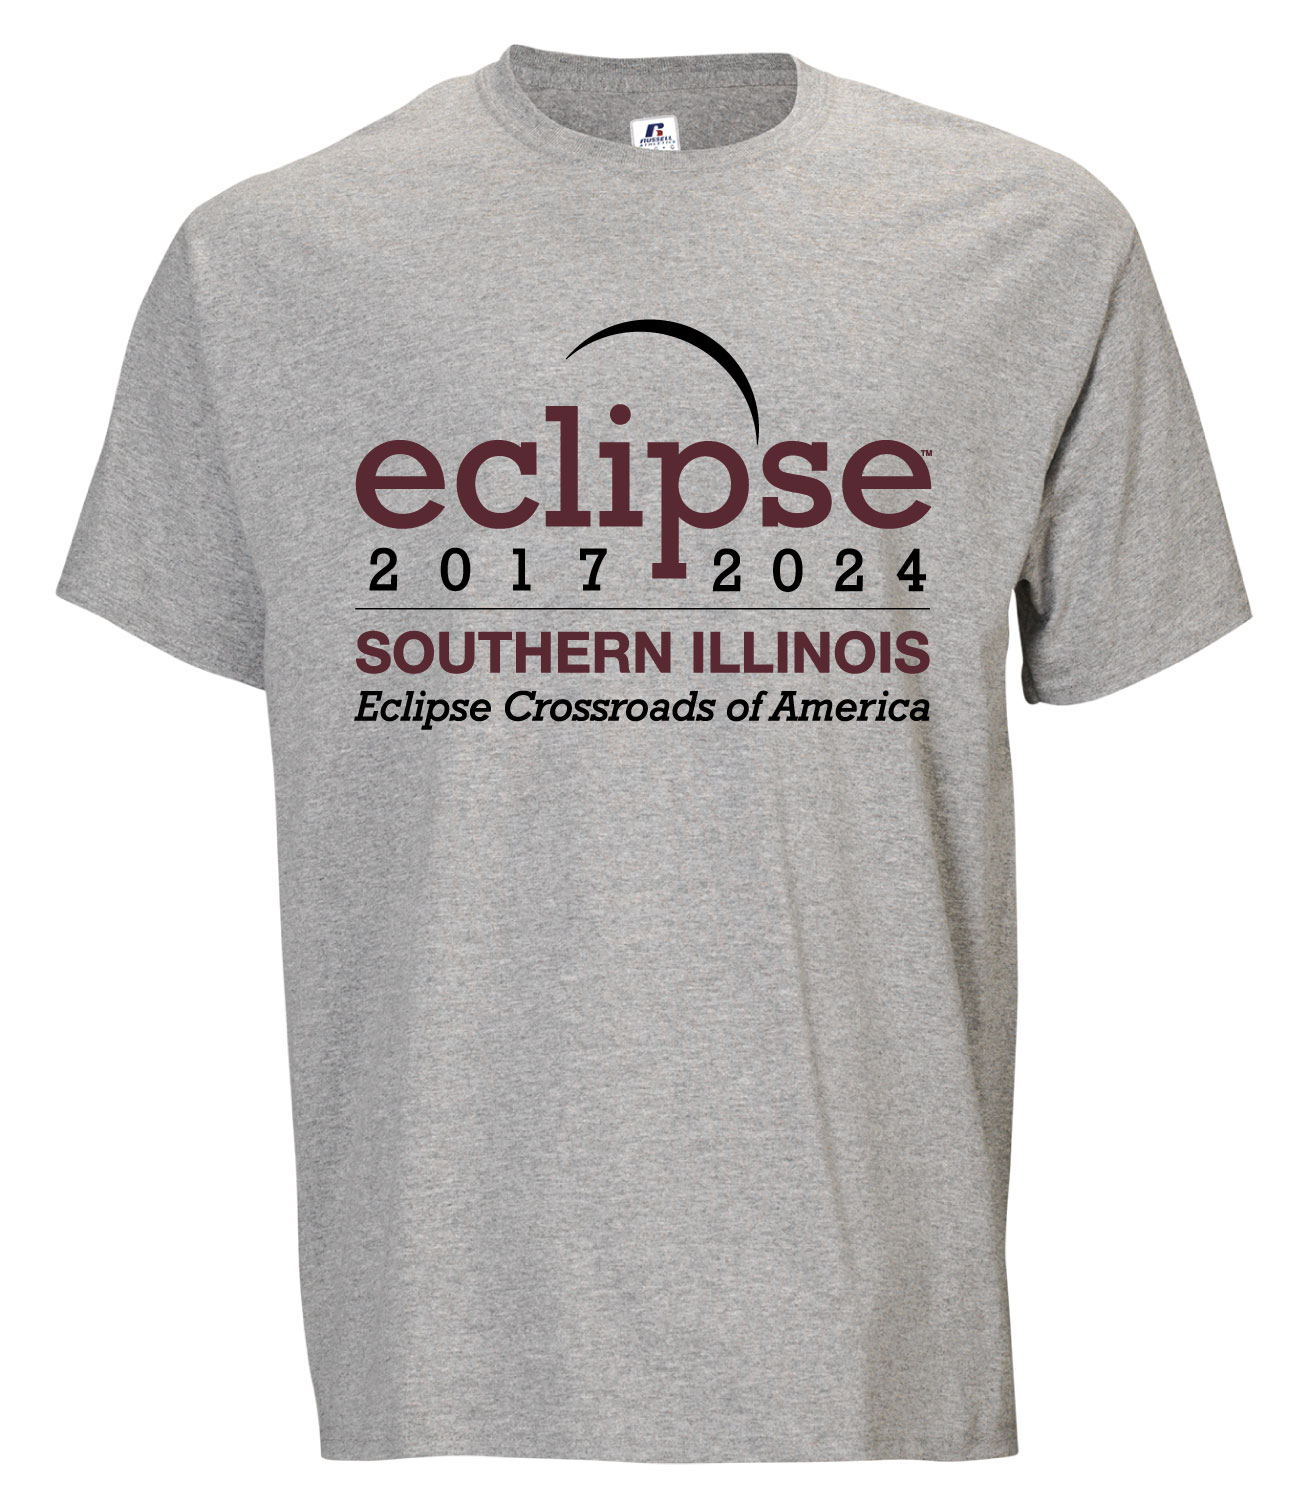 Image for the RUSSELL® ECLIPSE 2017/2024 GREY CROSSROADS T product